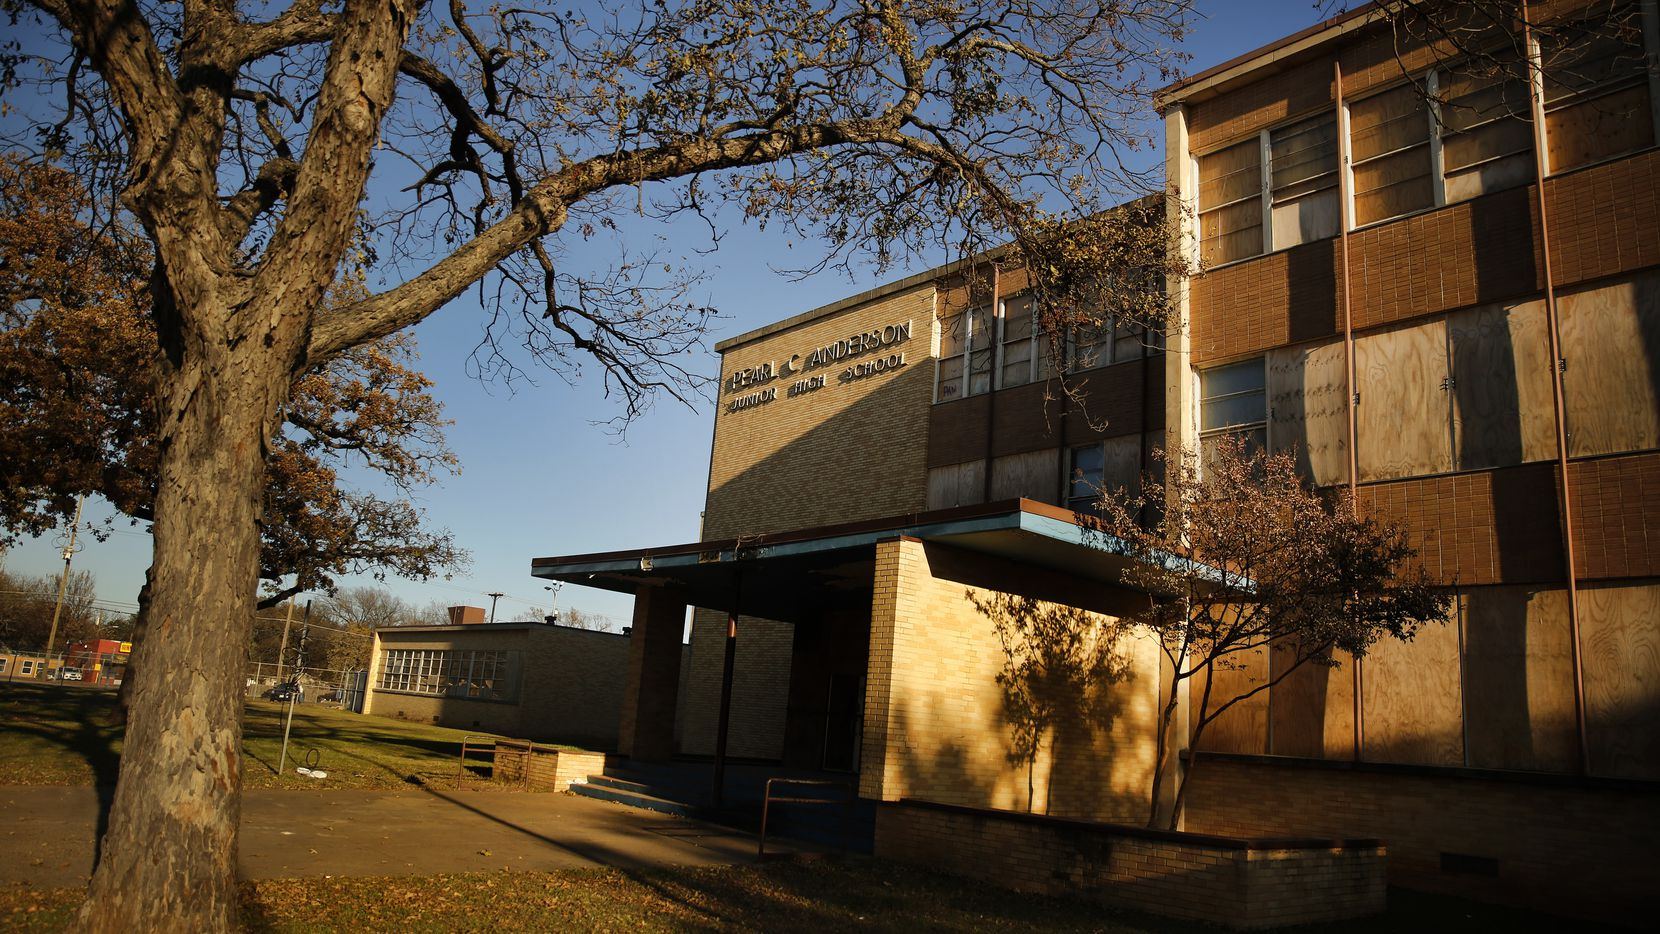 For years, this is how Pearl C. Anderson has looked to the community the Dallas ISD abandoned when the school was shuttered.